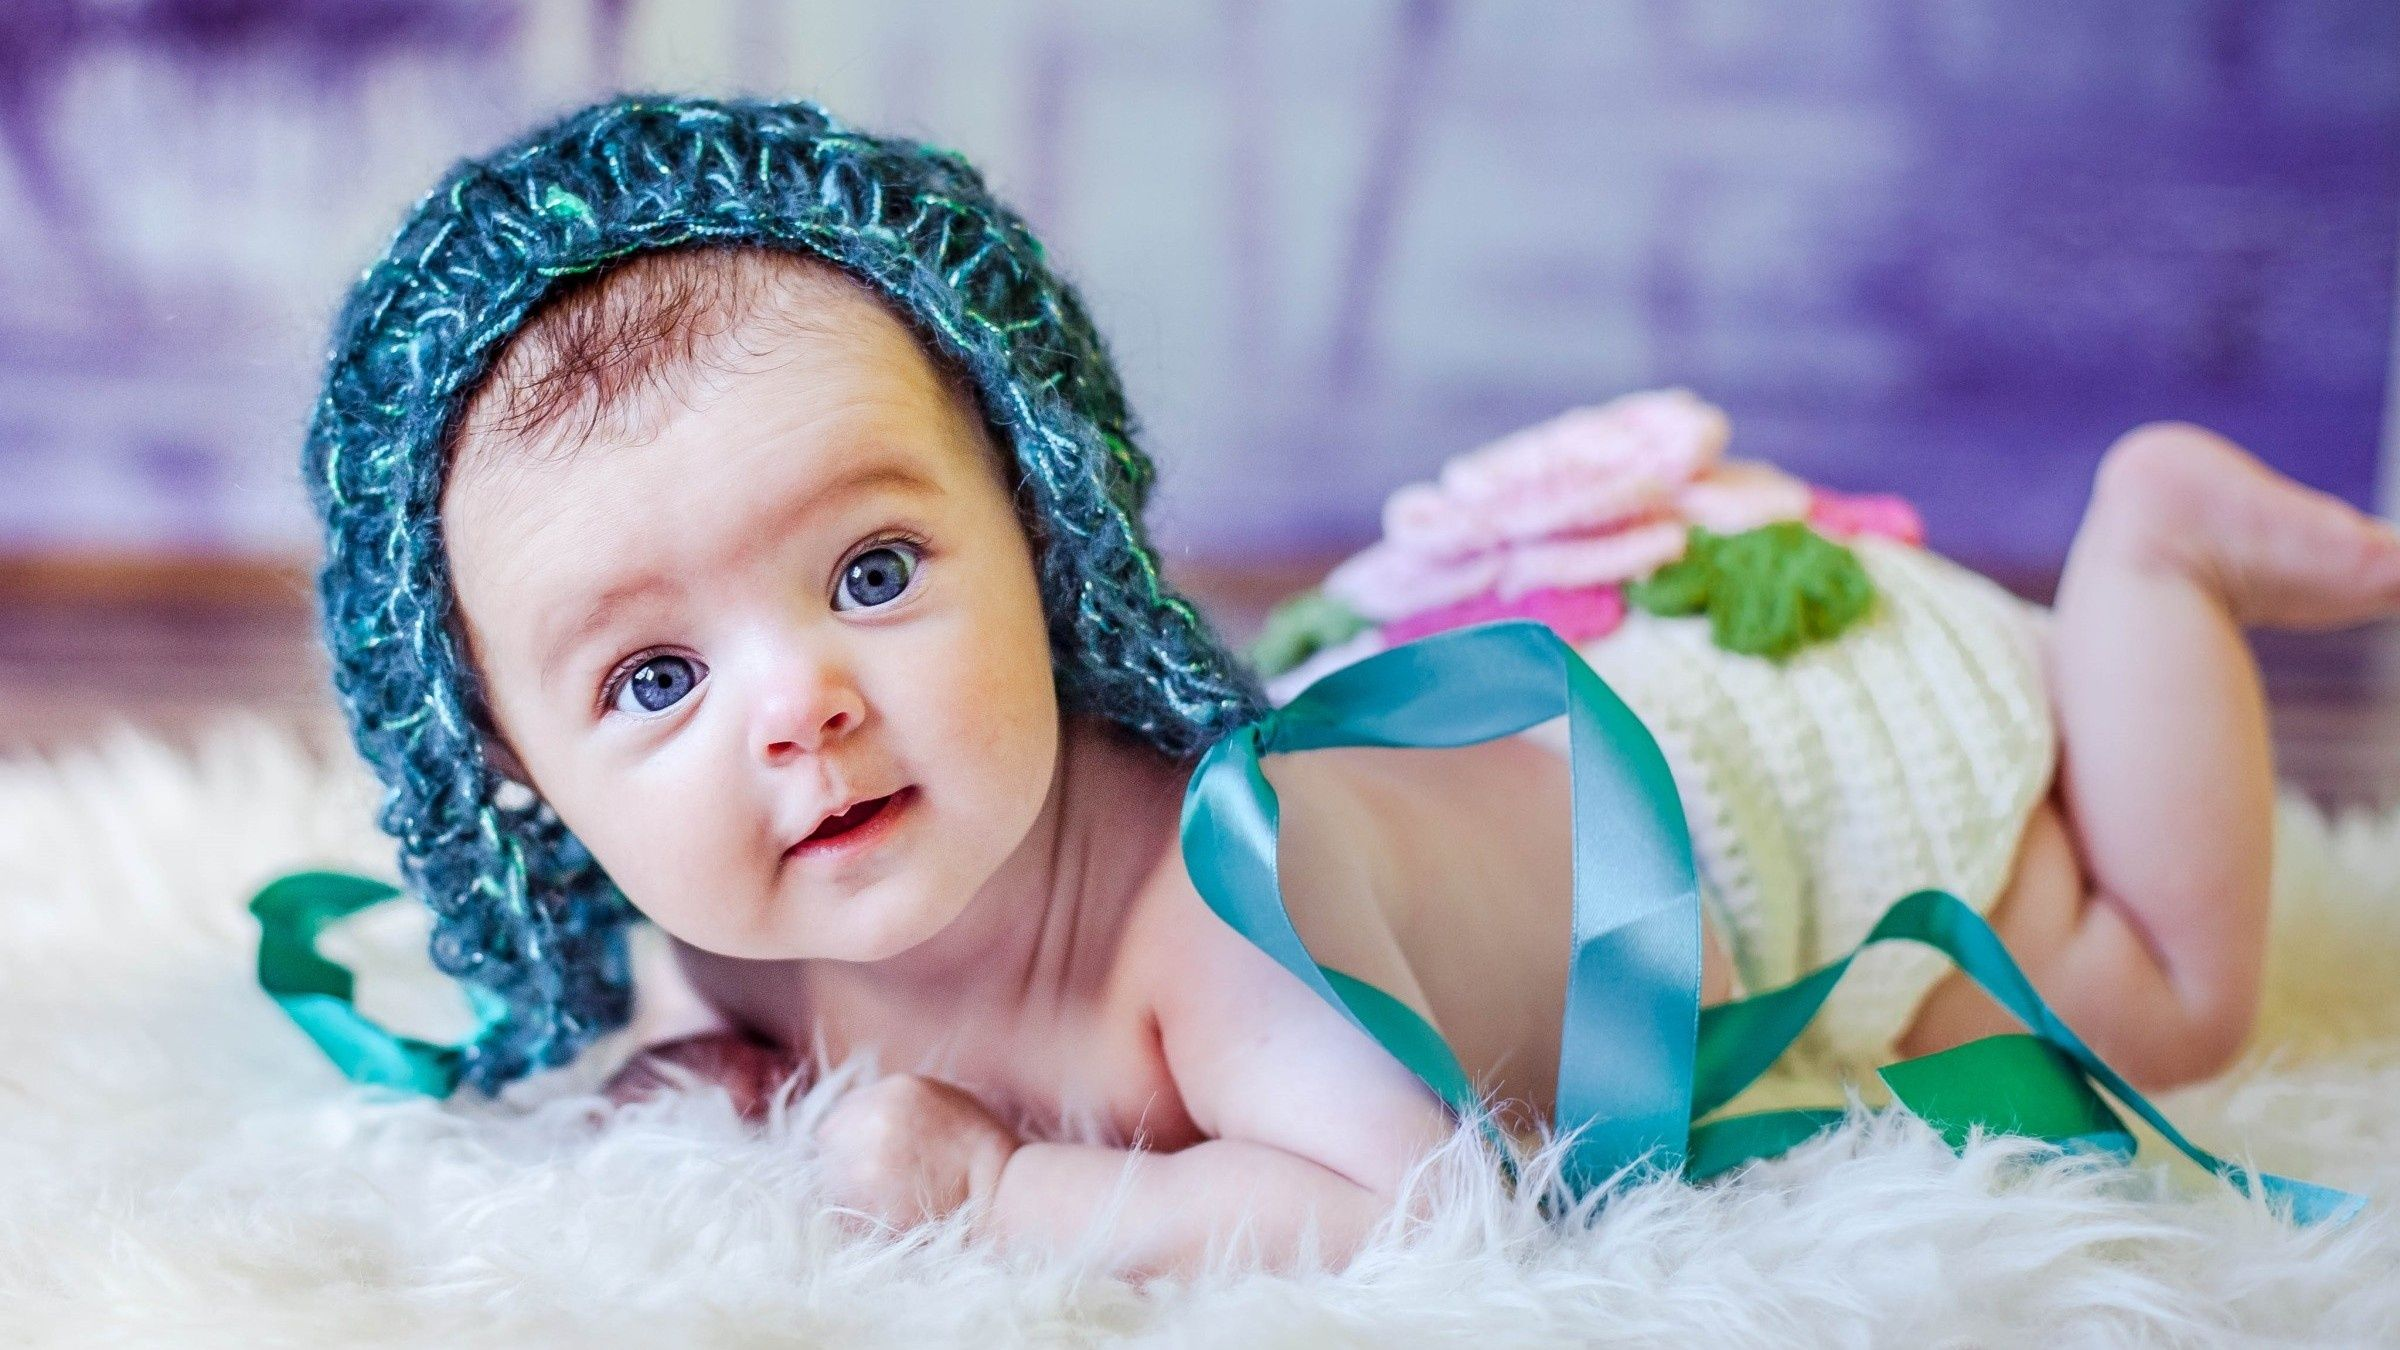 Kids Wallpapers Fans Share Cute Baby Wallpaper Cute Baby Sleeping Cute Baby Pictures